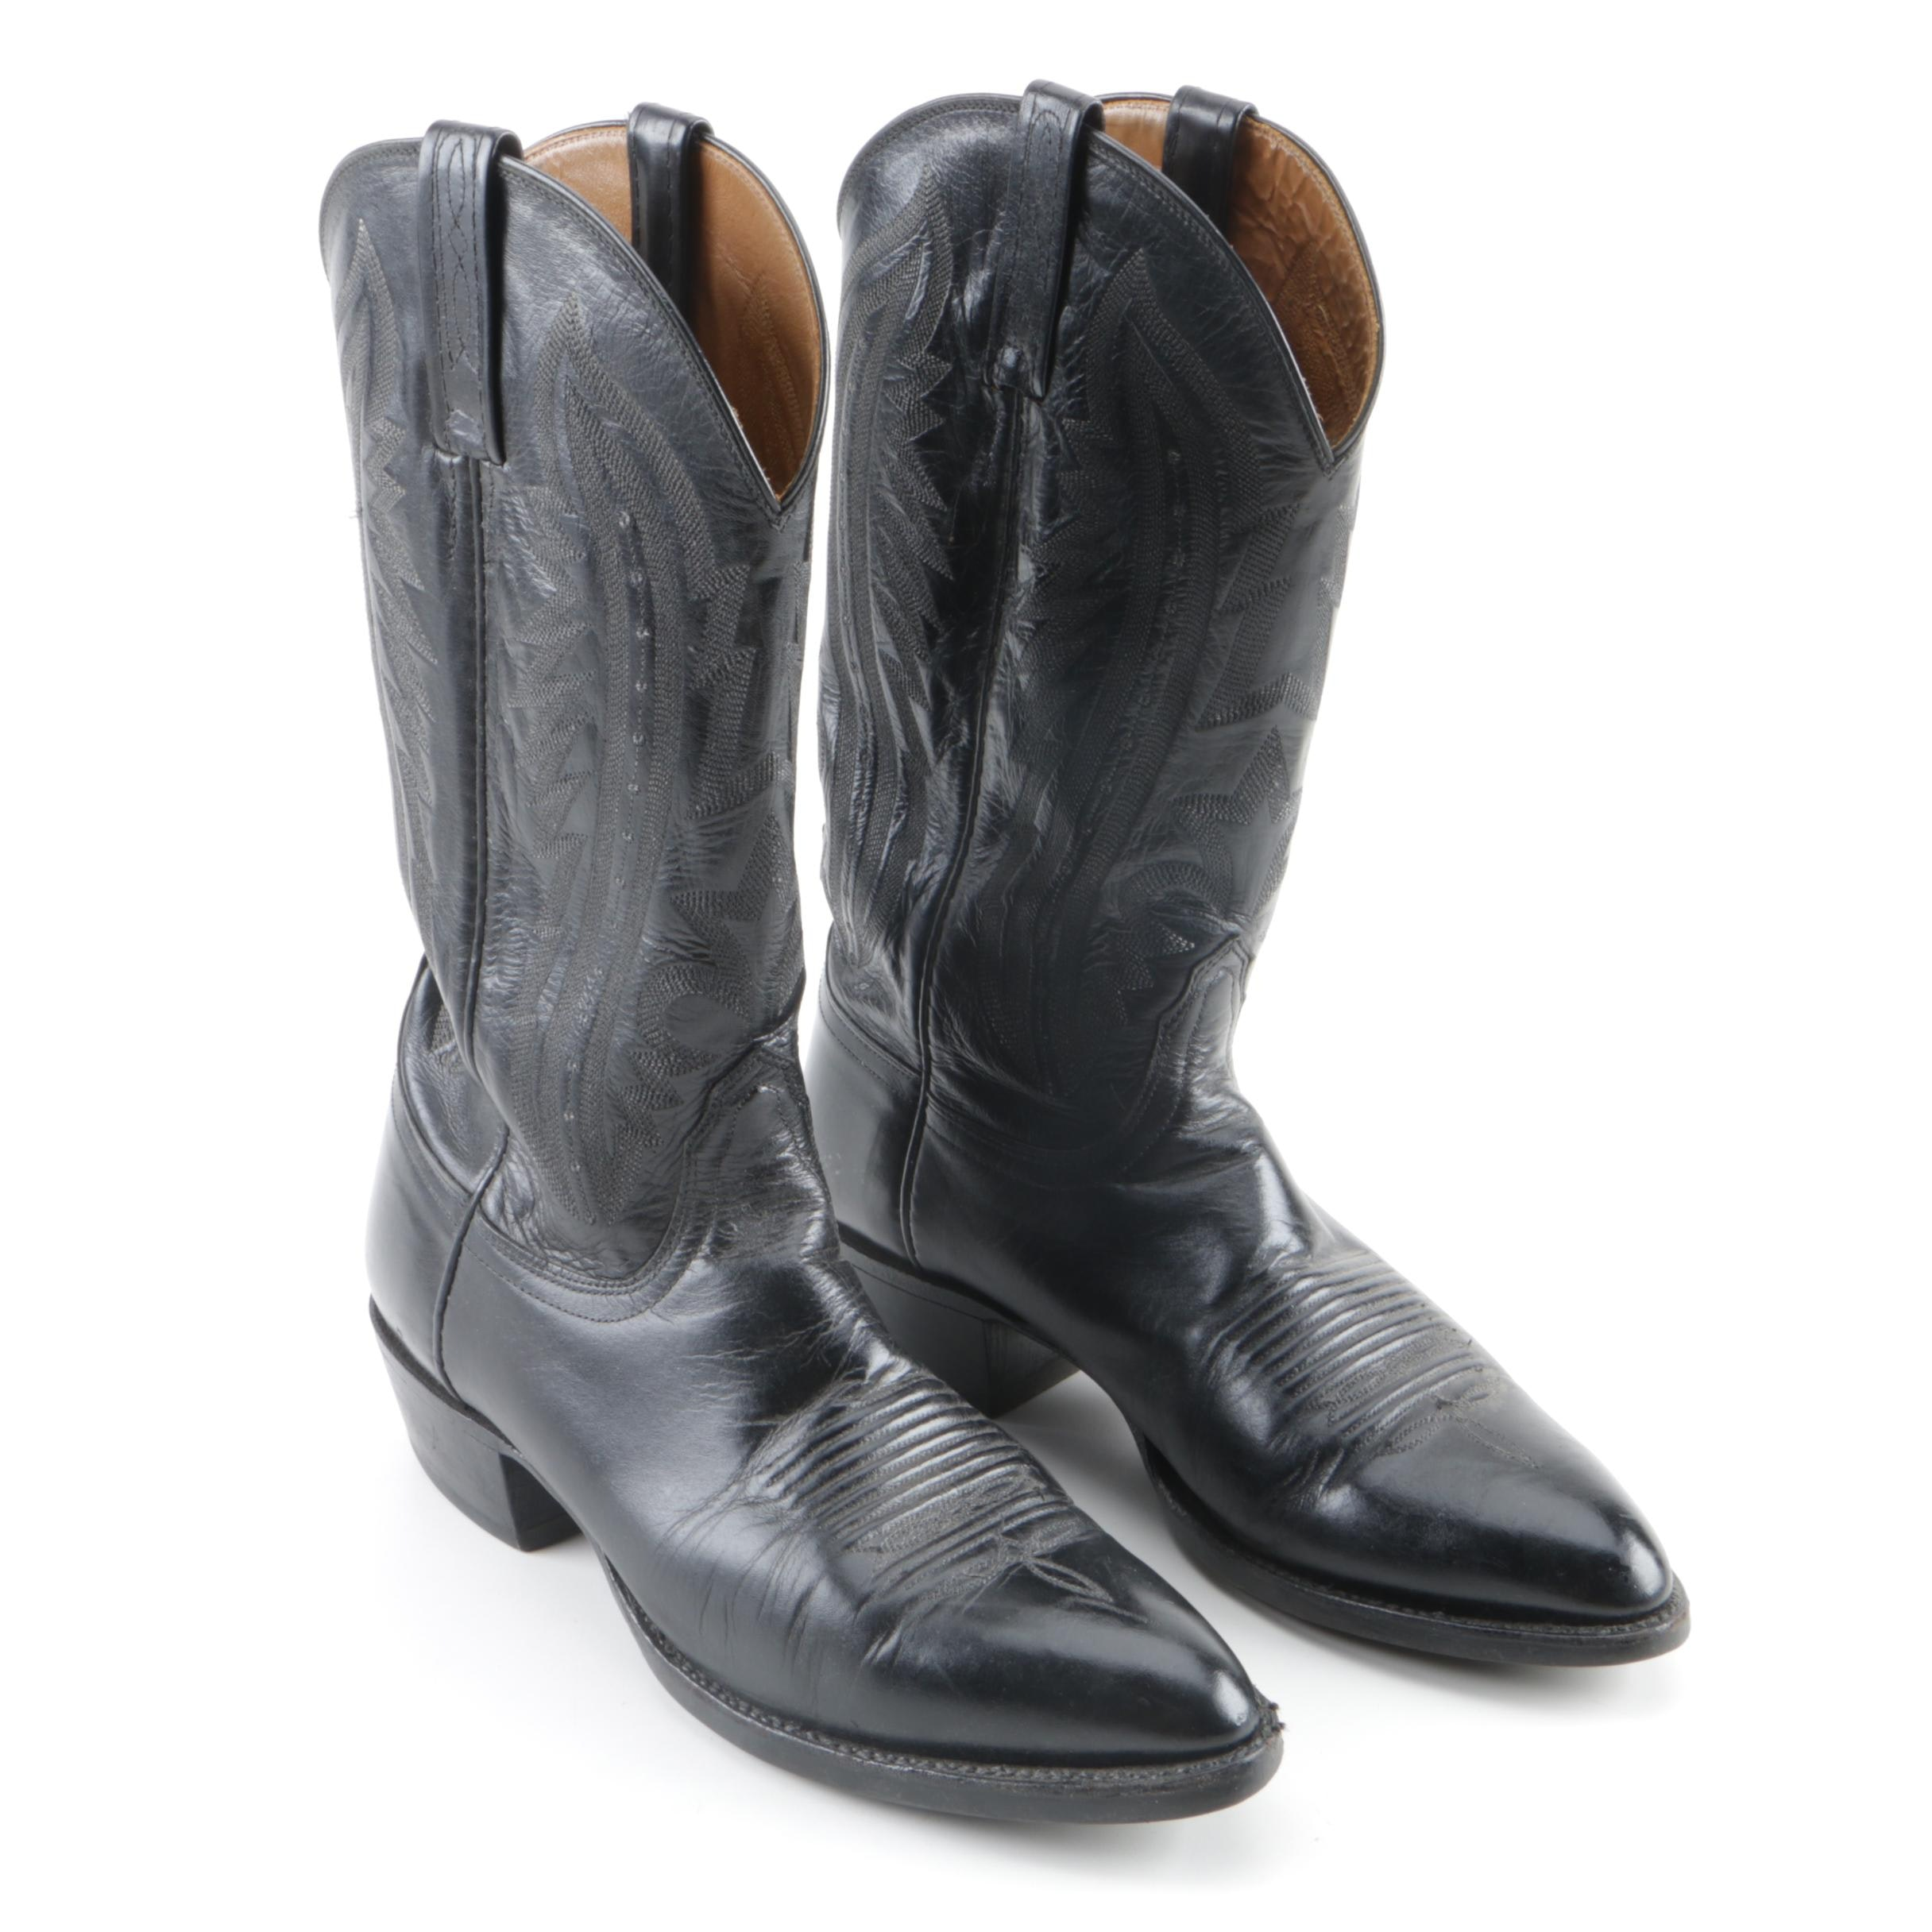 Men's Lucchese 2000 Black Leather Cowboy Boots